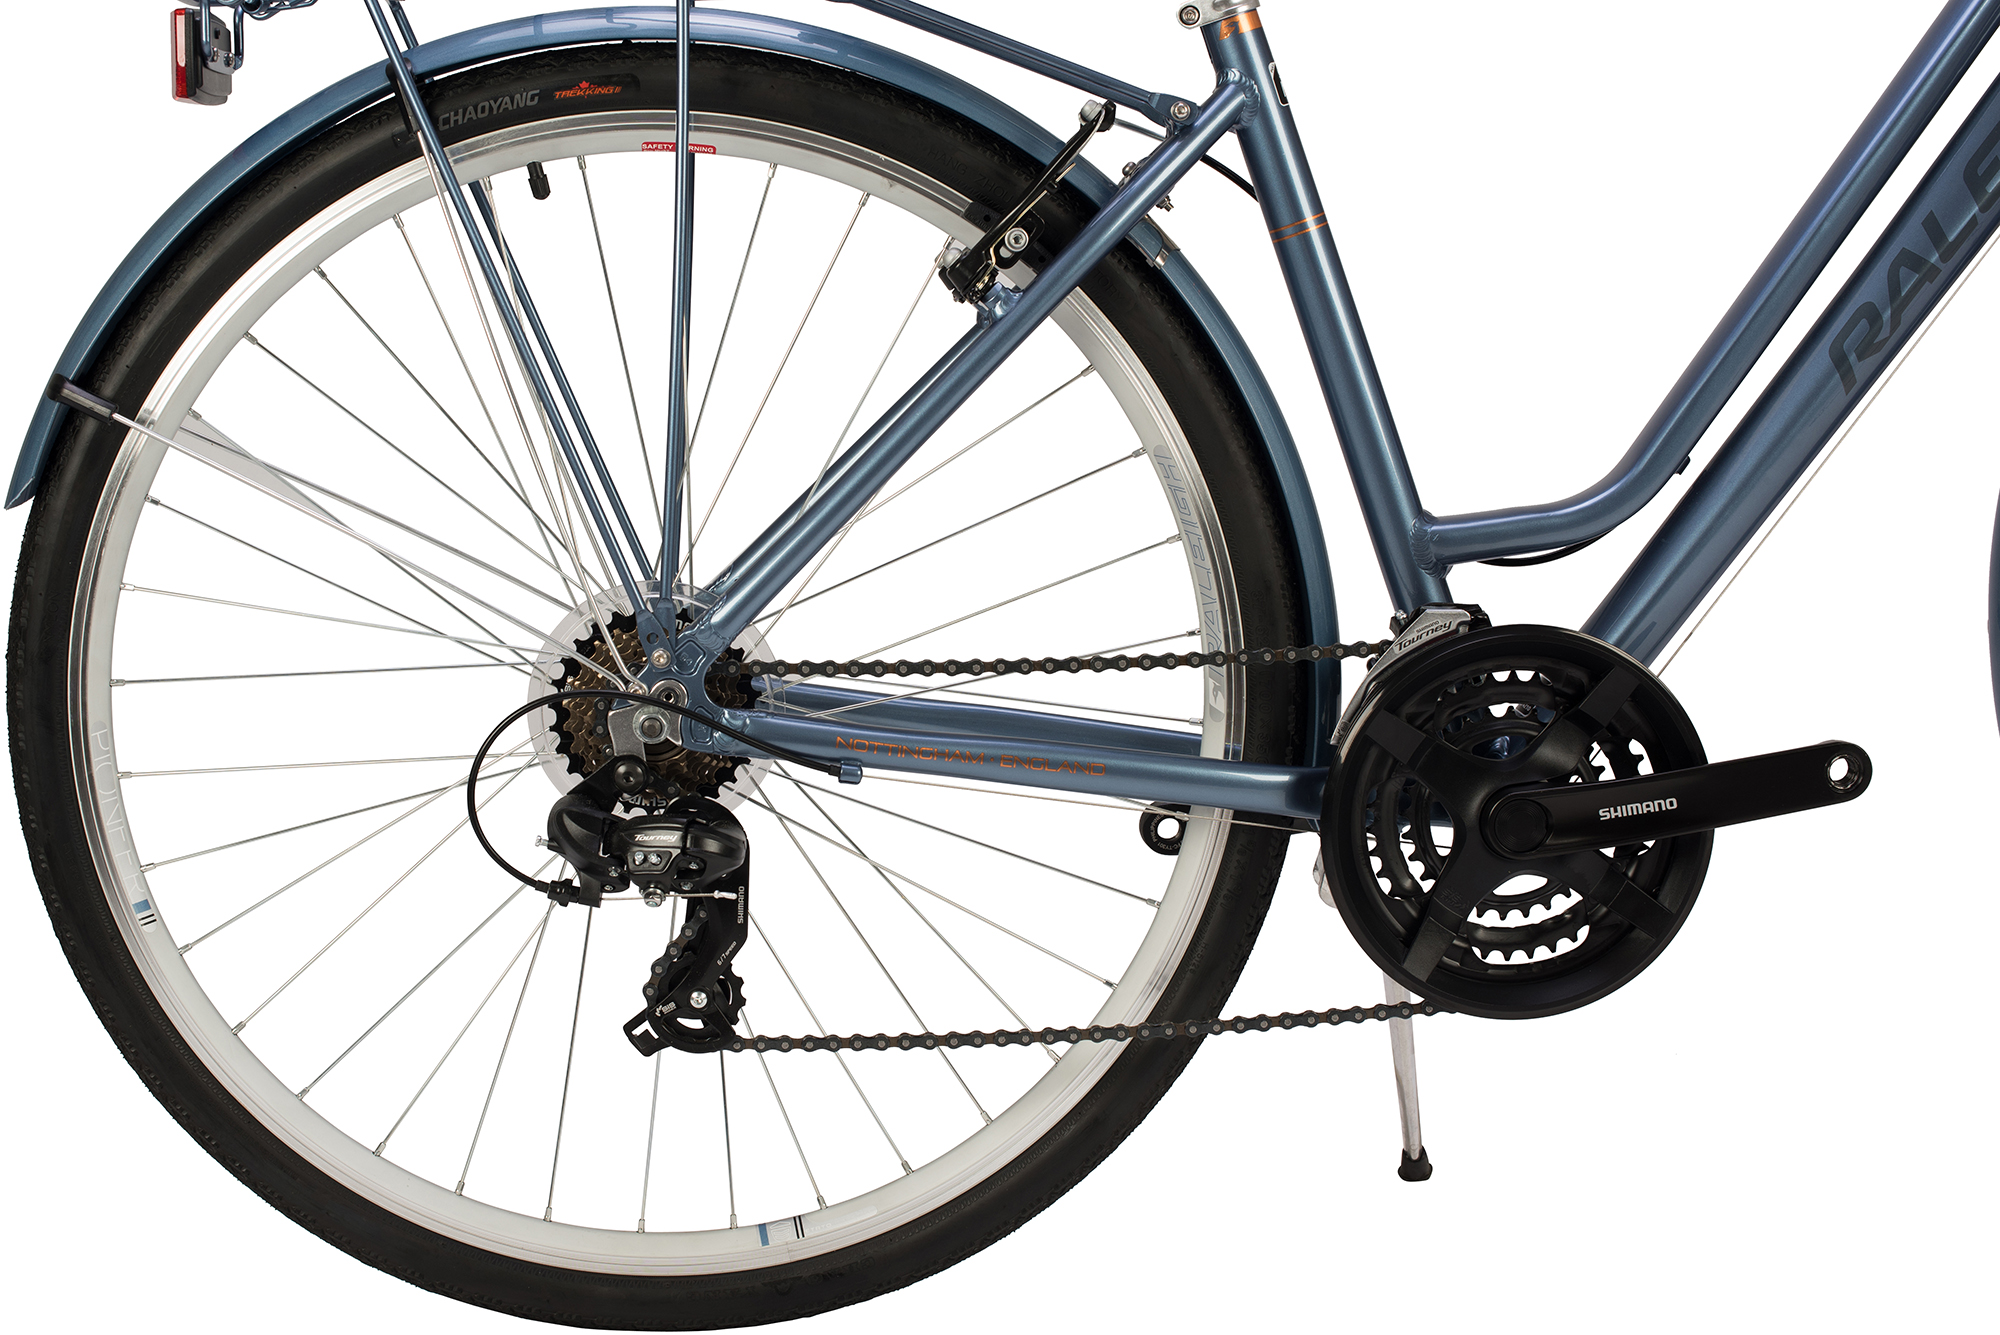 View of the crank and gears on the Raleigh Pioneer low step bike in grey